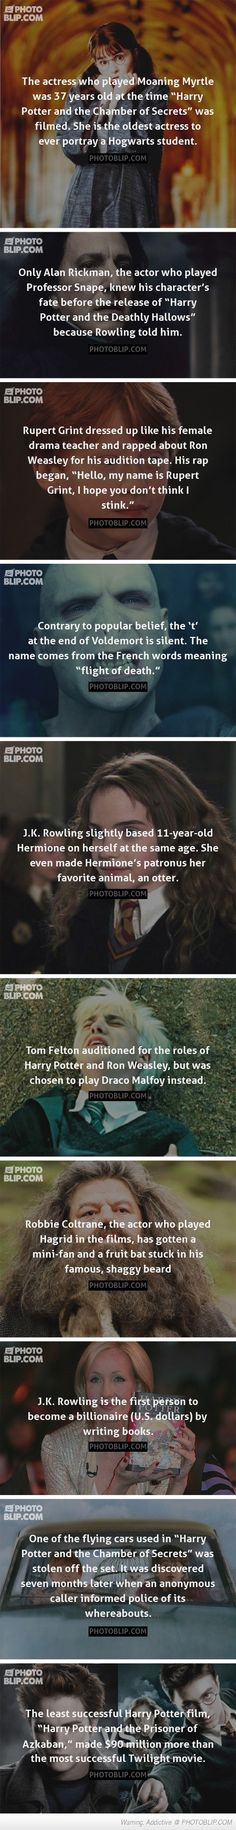 Awesome Harry Potter facts